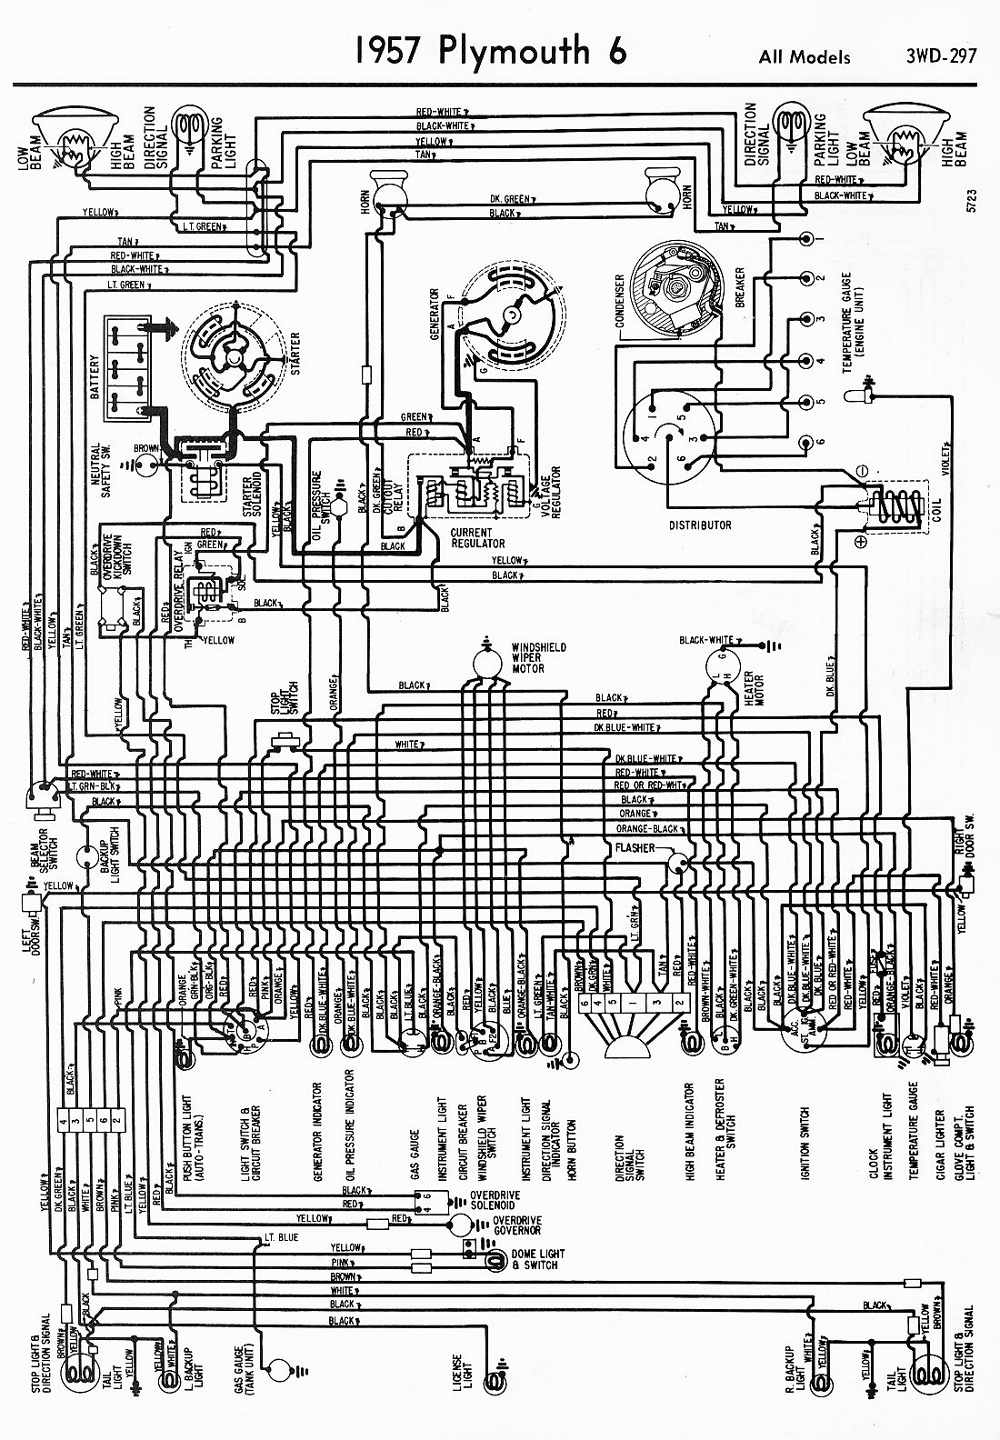 1968 Gtx Wiring Diagram Data C10 Fuse Box Schematic Diagrams Pdf Plymouth Just Another 1966 Barracuda 1967